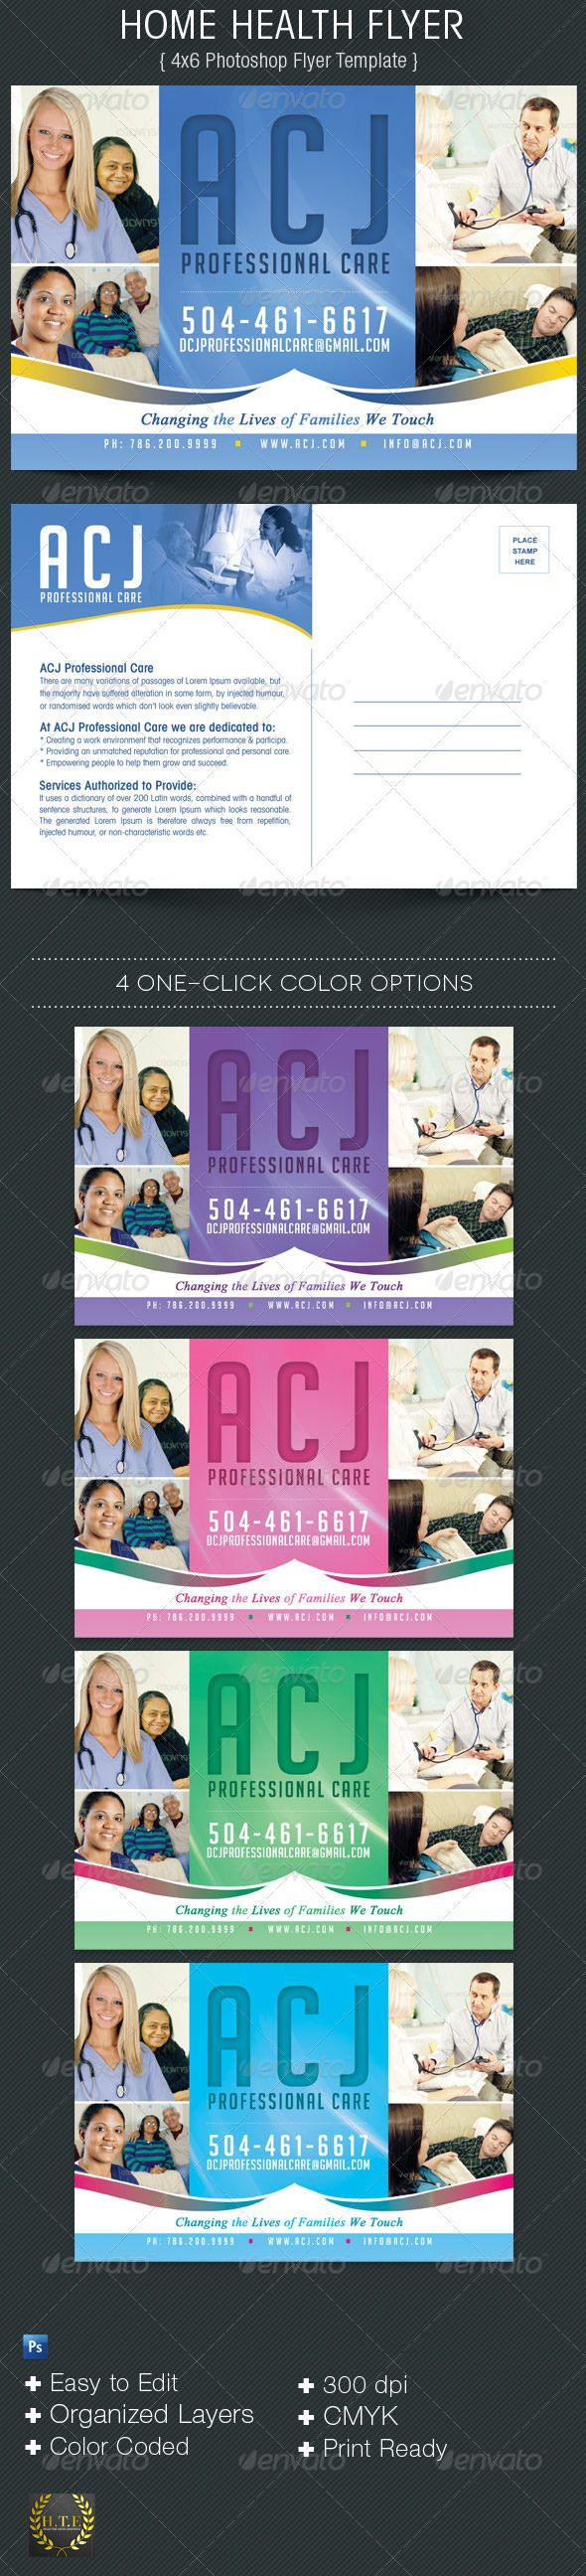 17 best ideas about professional nursing organizations on home health flyer template